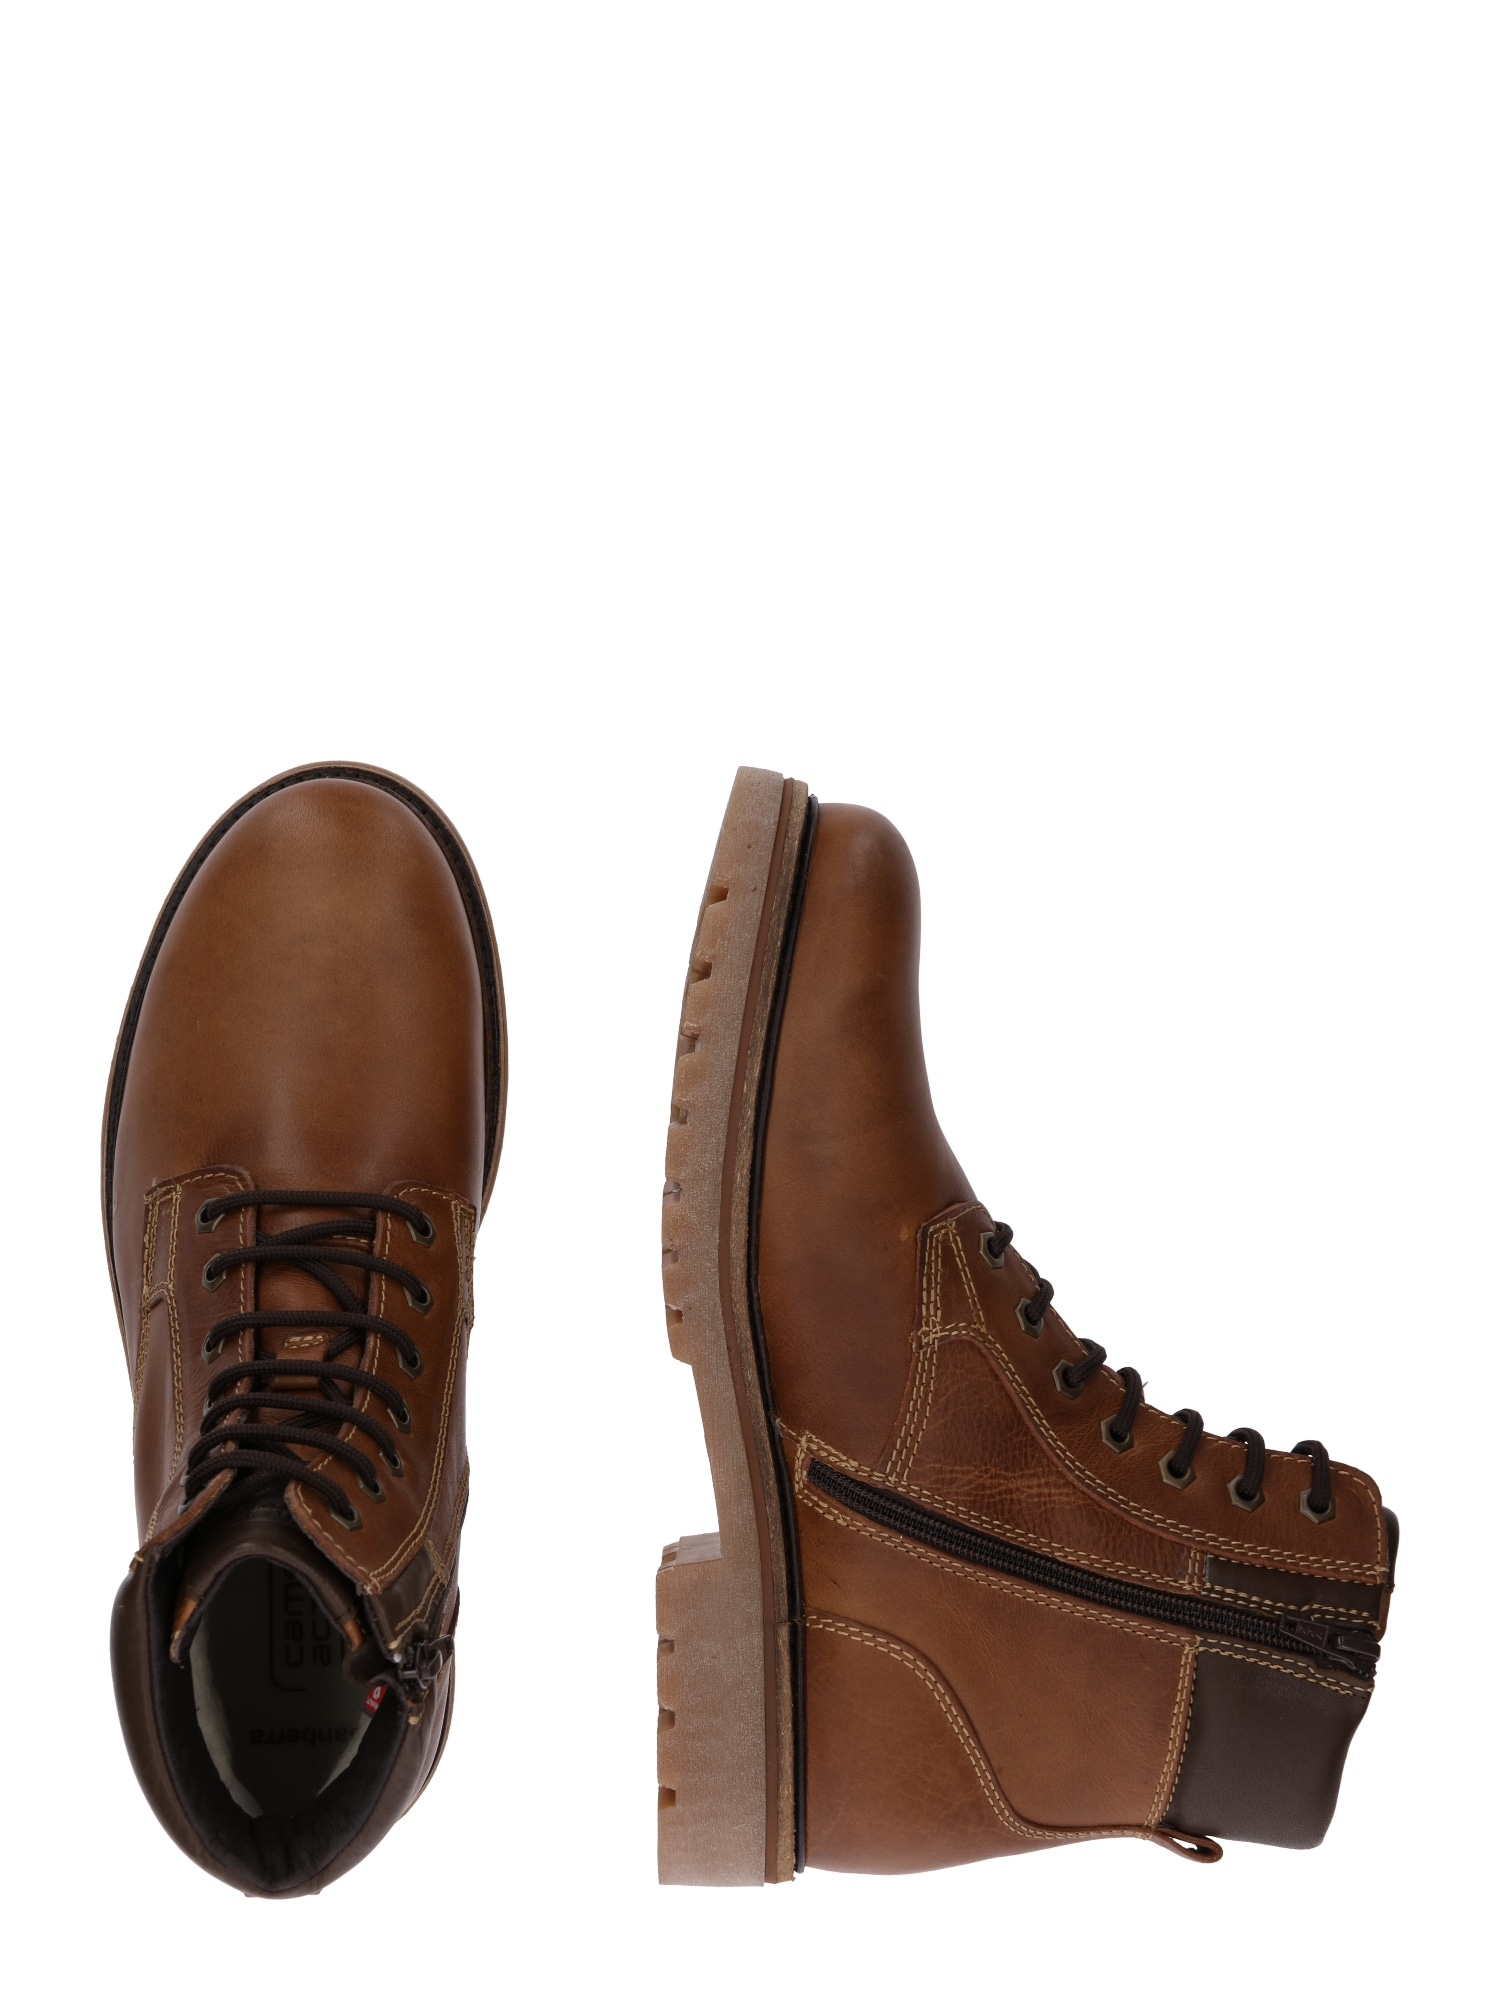 86a2bbbb6eb9 AboutYou | SALE Herren CAMEL ACTIVE CAMEL ACTIVE Stiefel Canberra 15 ...